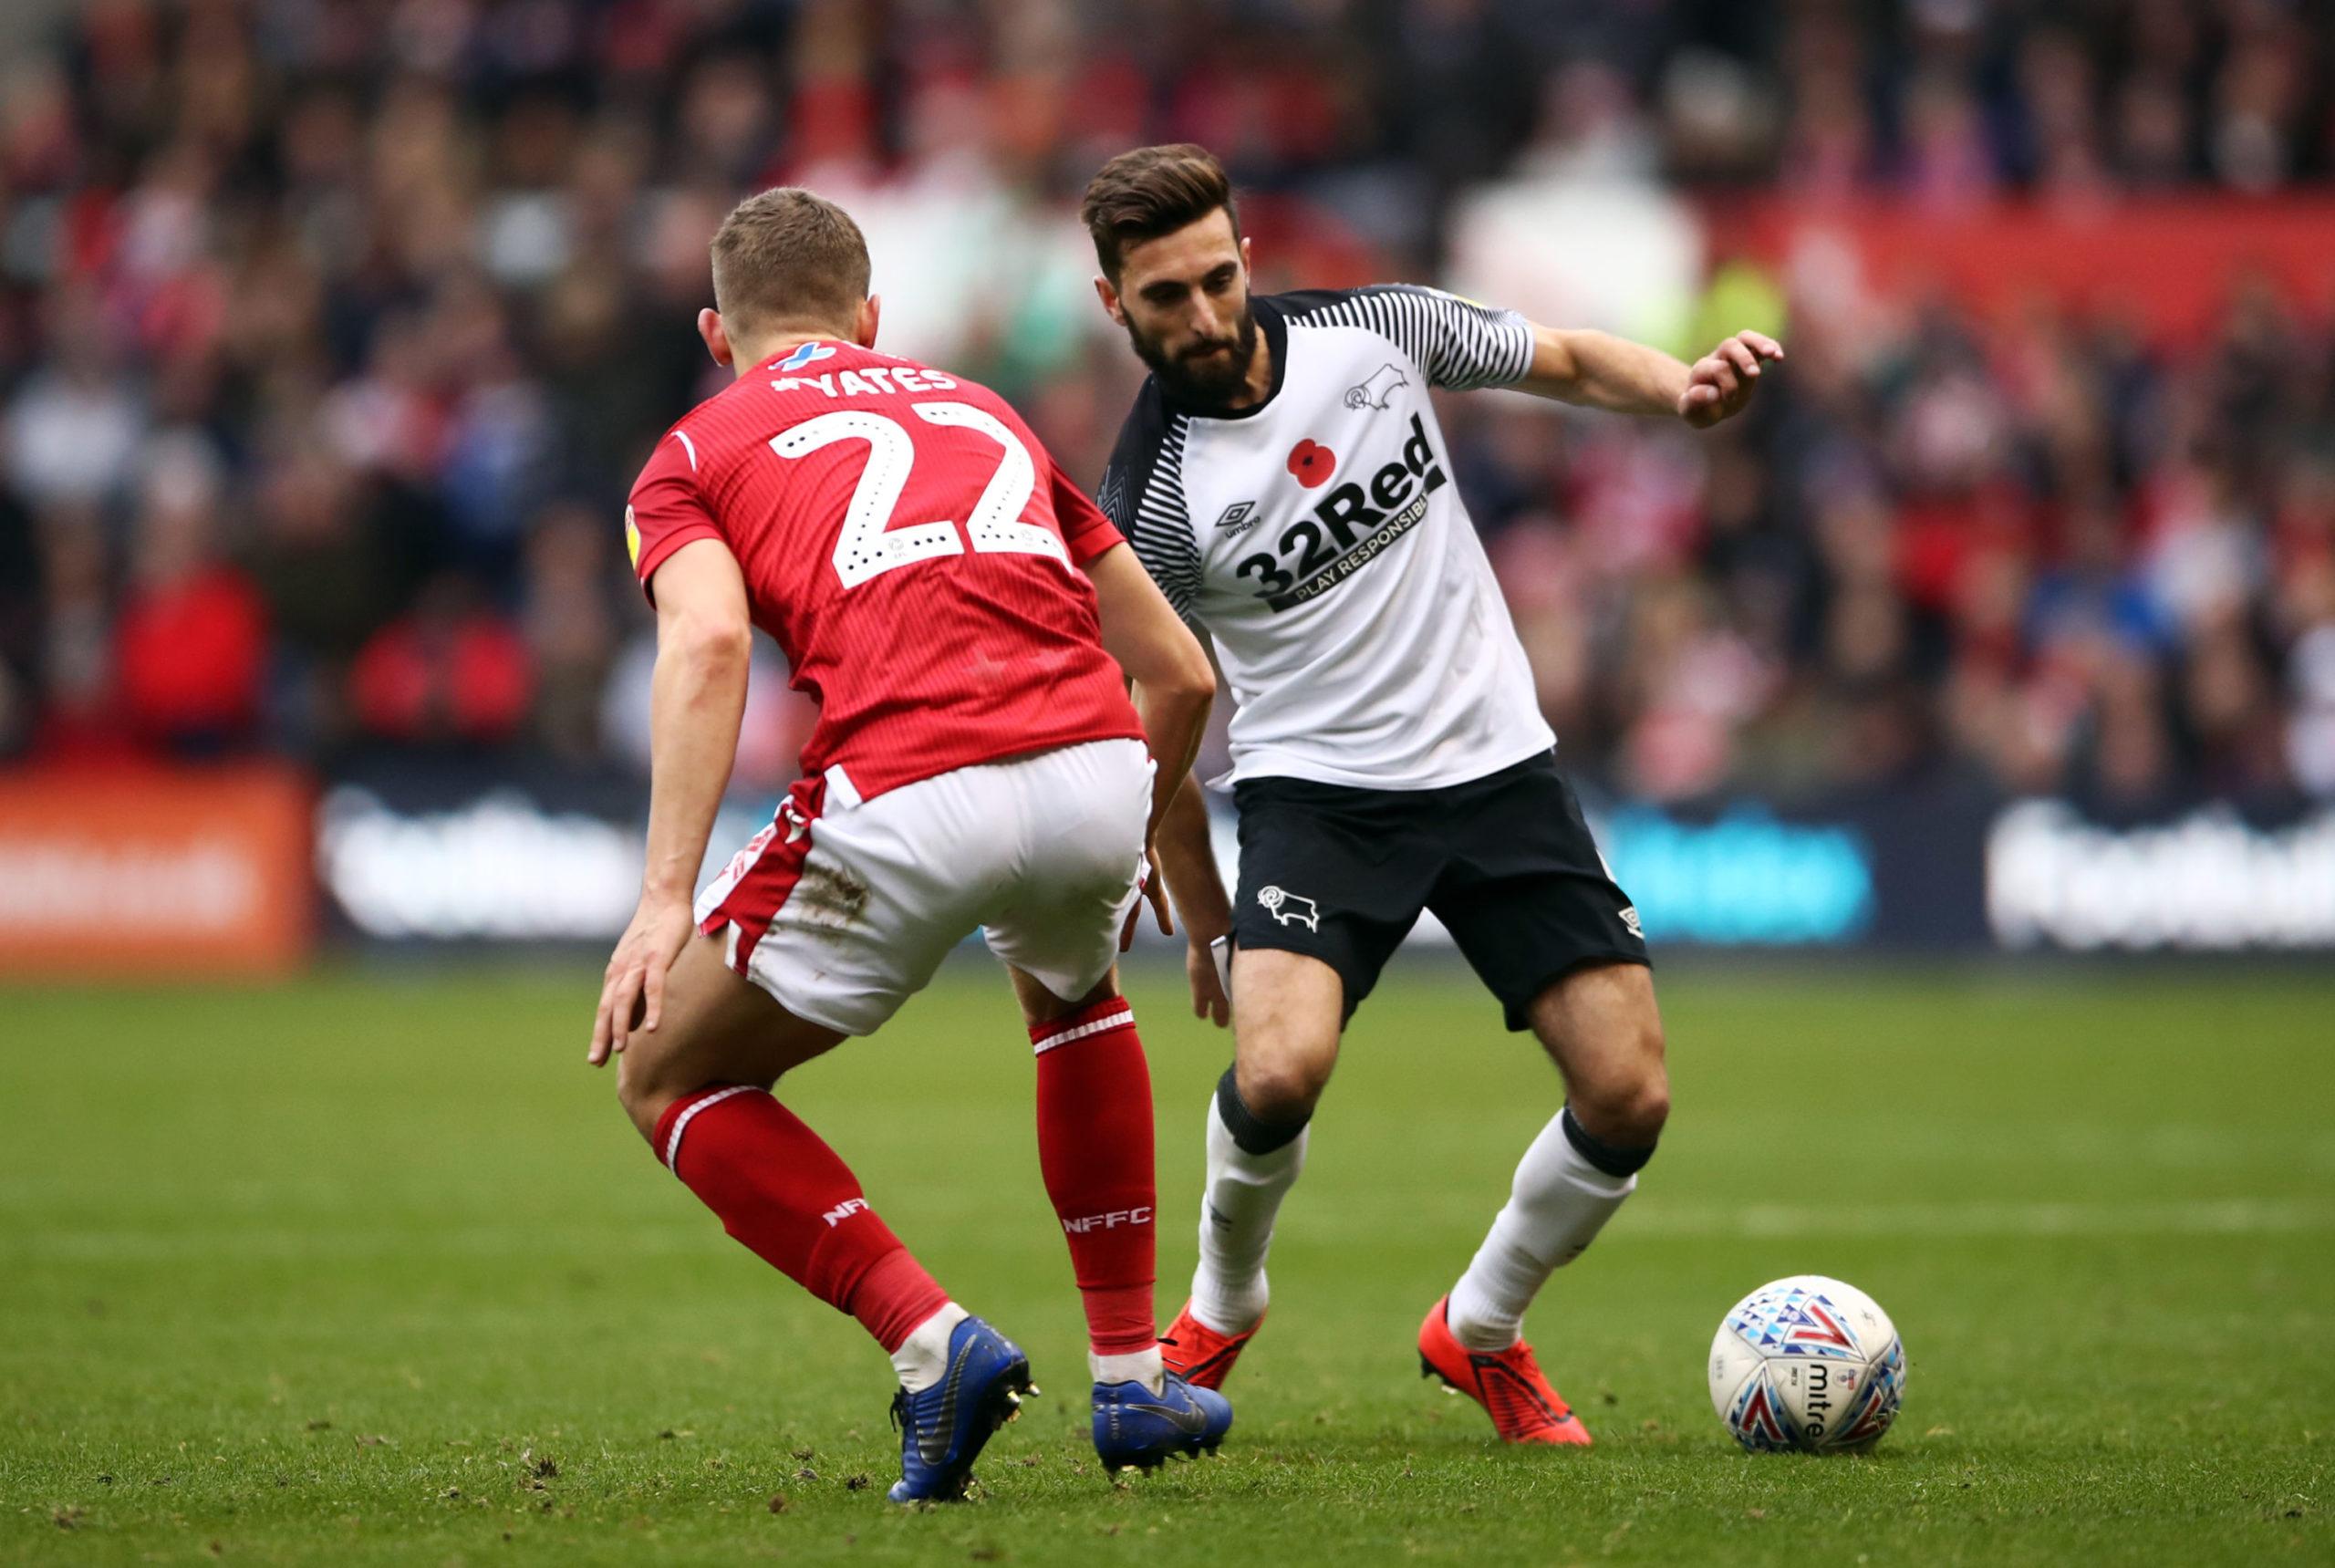 Derby County's Graeme Shinnie was the Dons' organiser during his spell at Pittodrie.